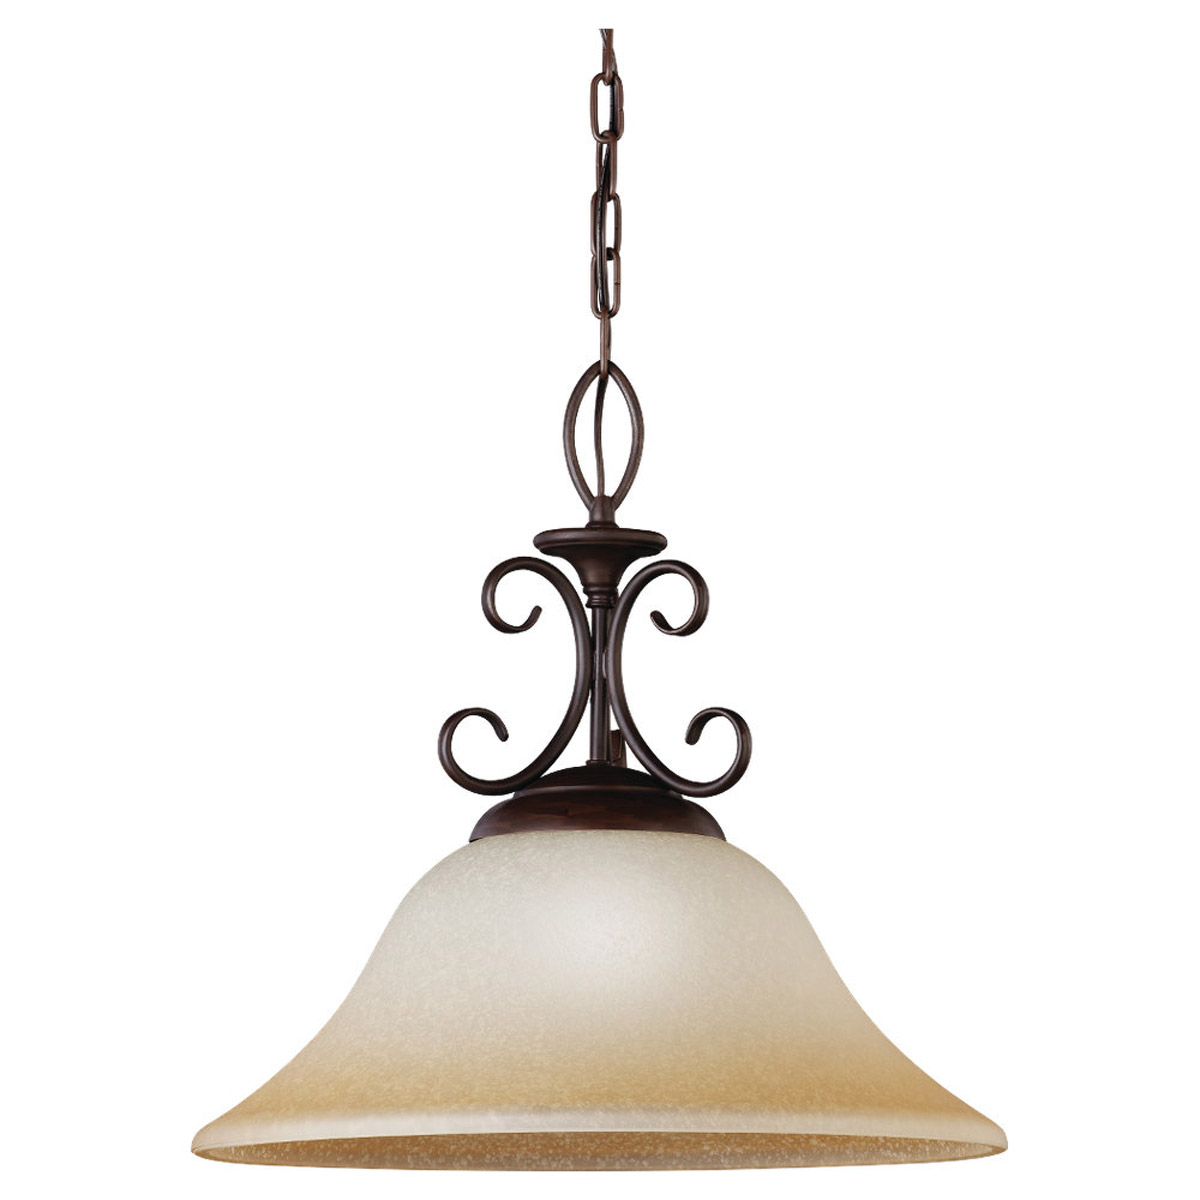 Sea Gull Lighting Montclaire 1 Light Pendant in Olde Iron 65105-72